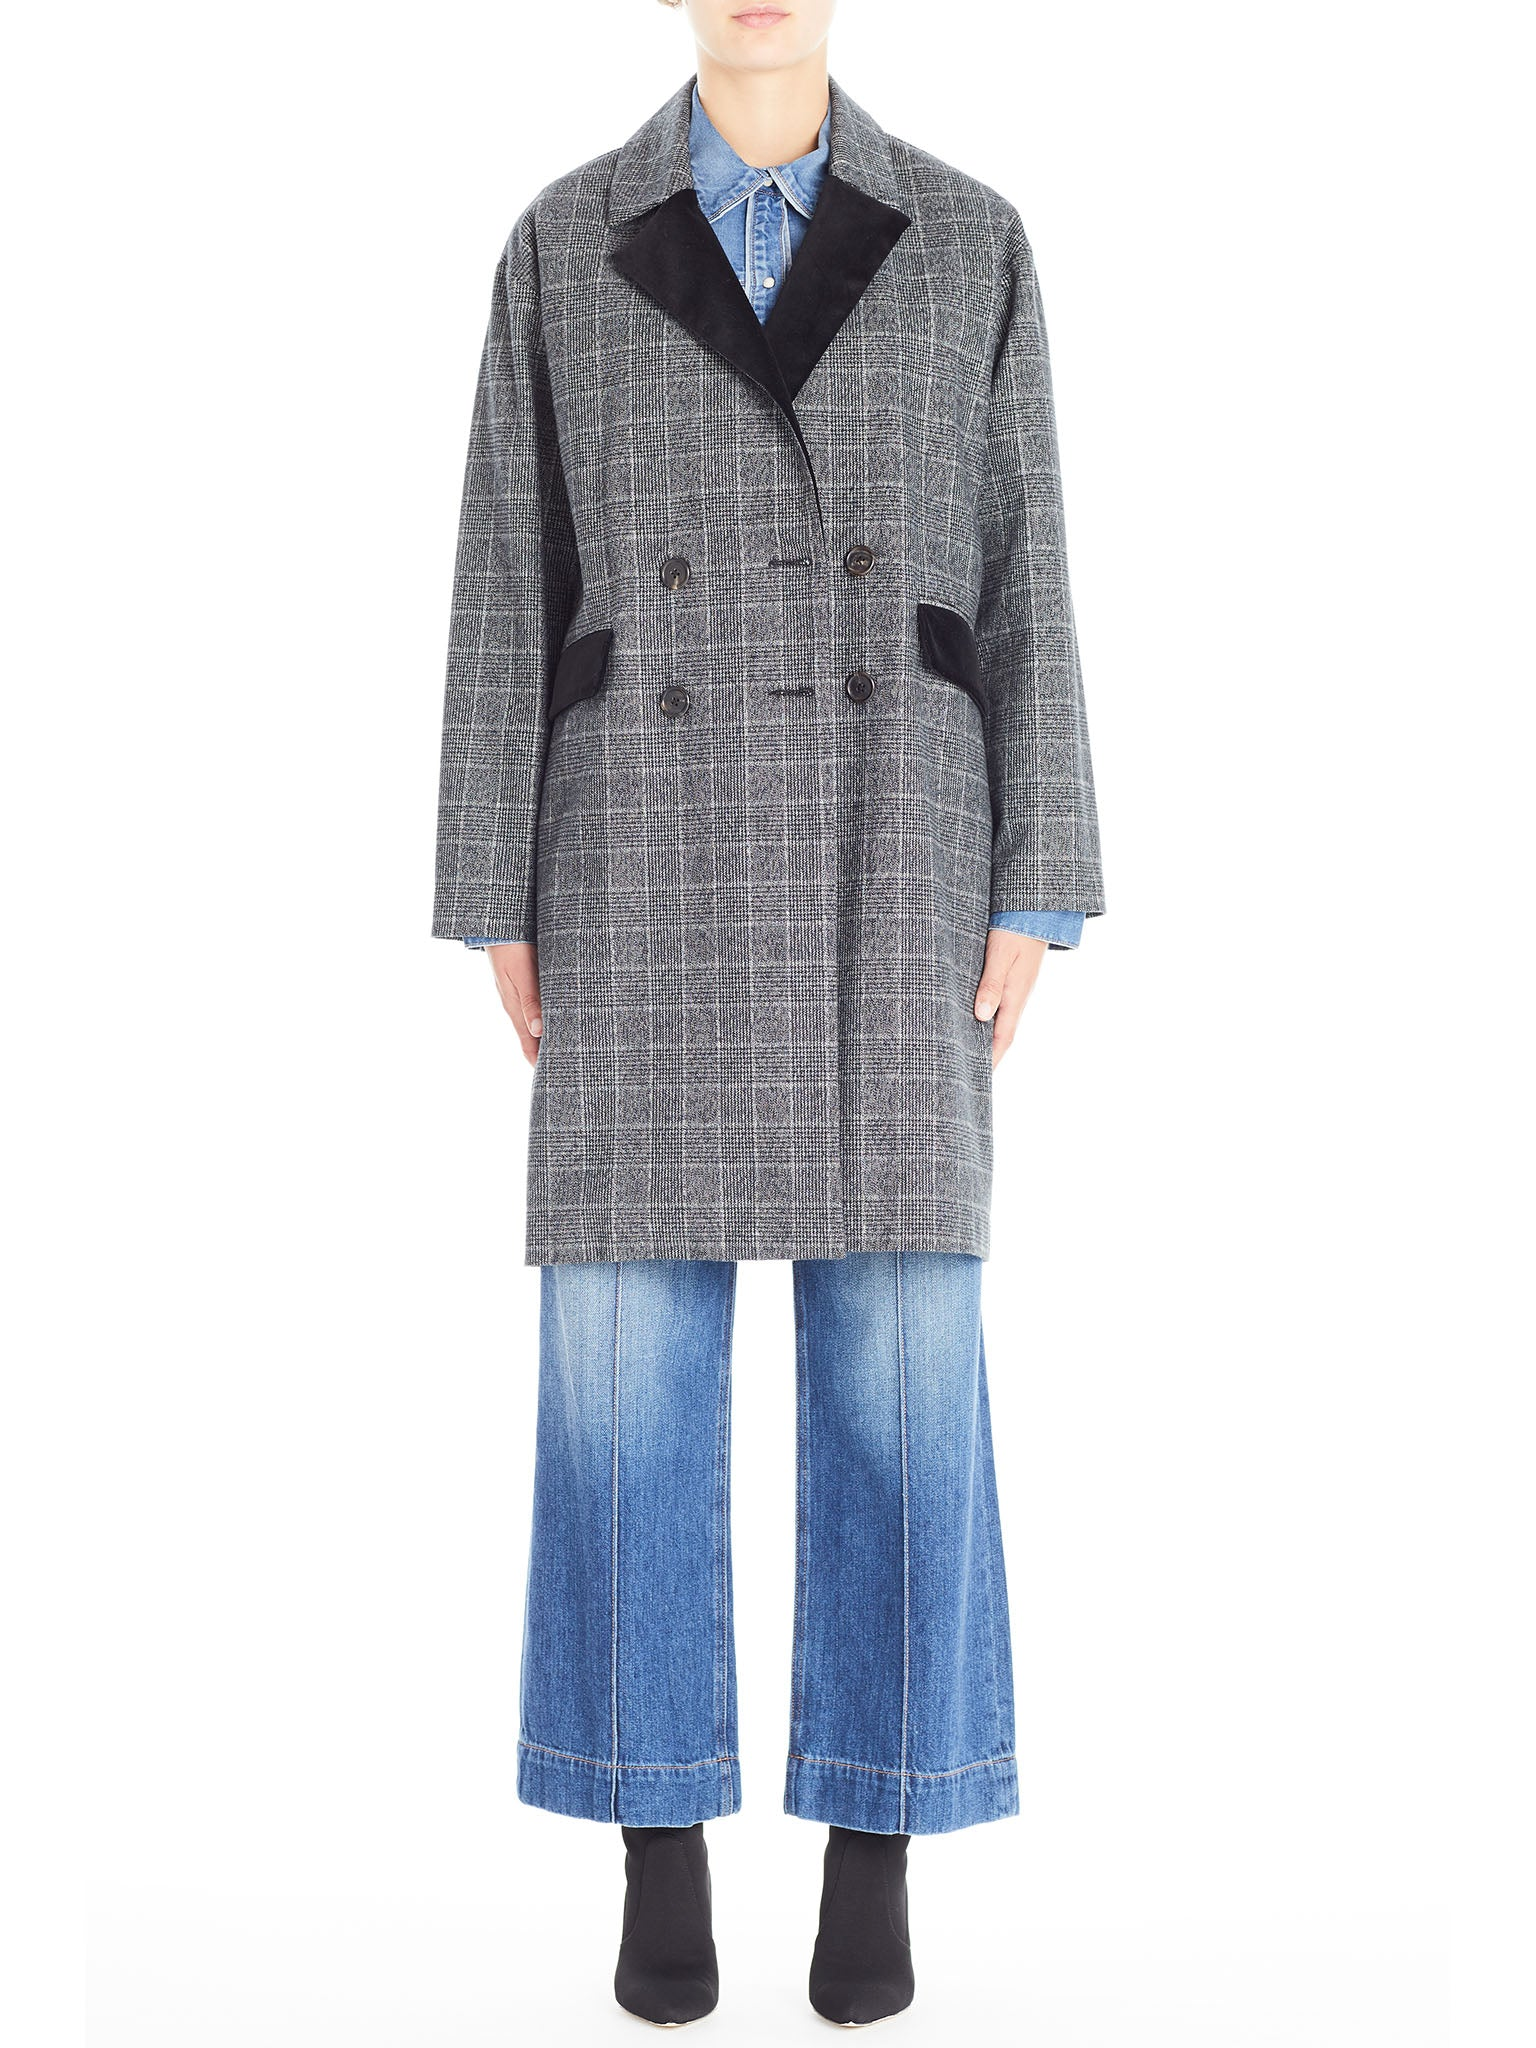 Oversized Coat in Italian Brushed Plaid With Velvet Contrast